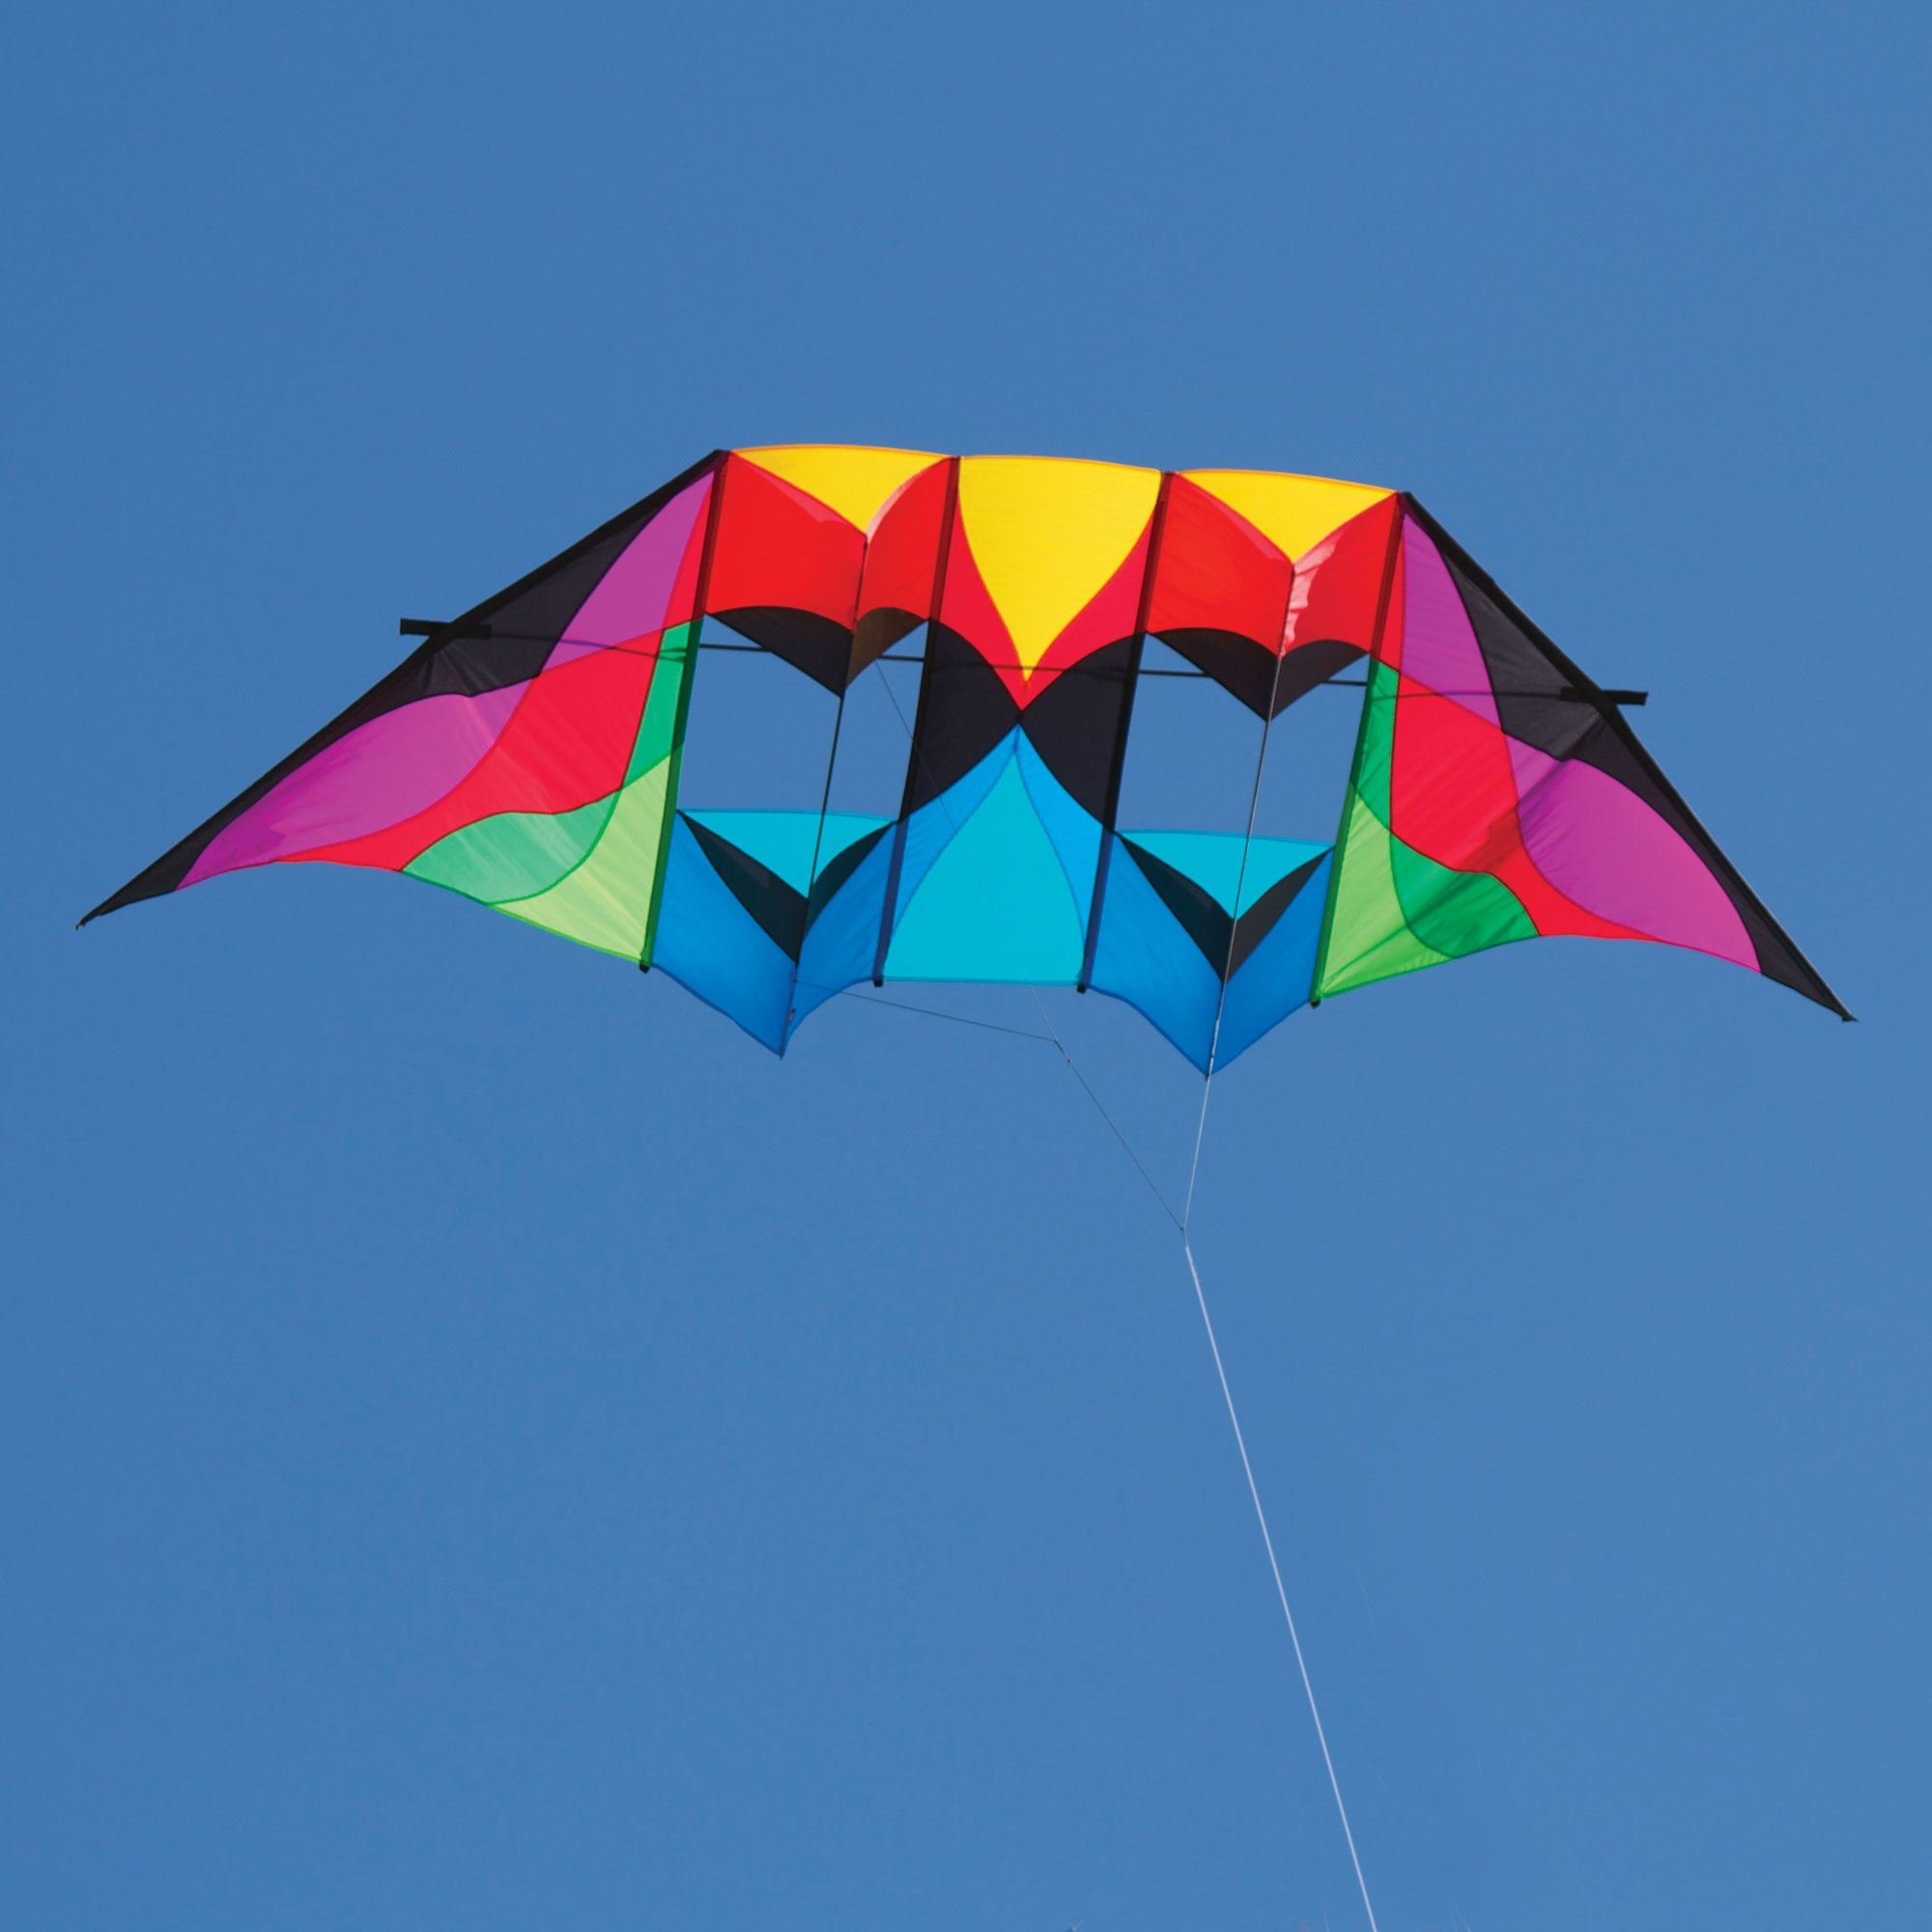 Into The Wind Stratosphere Double Delta Conyne Kite by Into The Wind